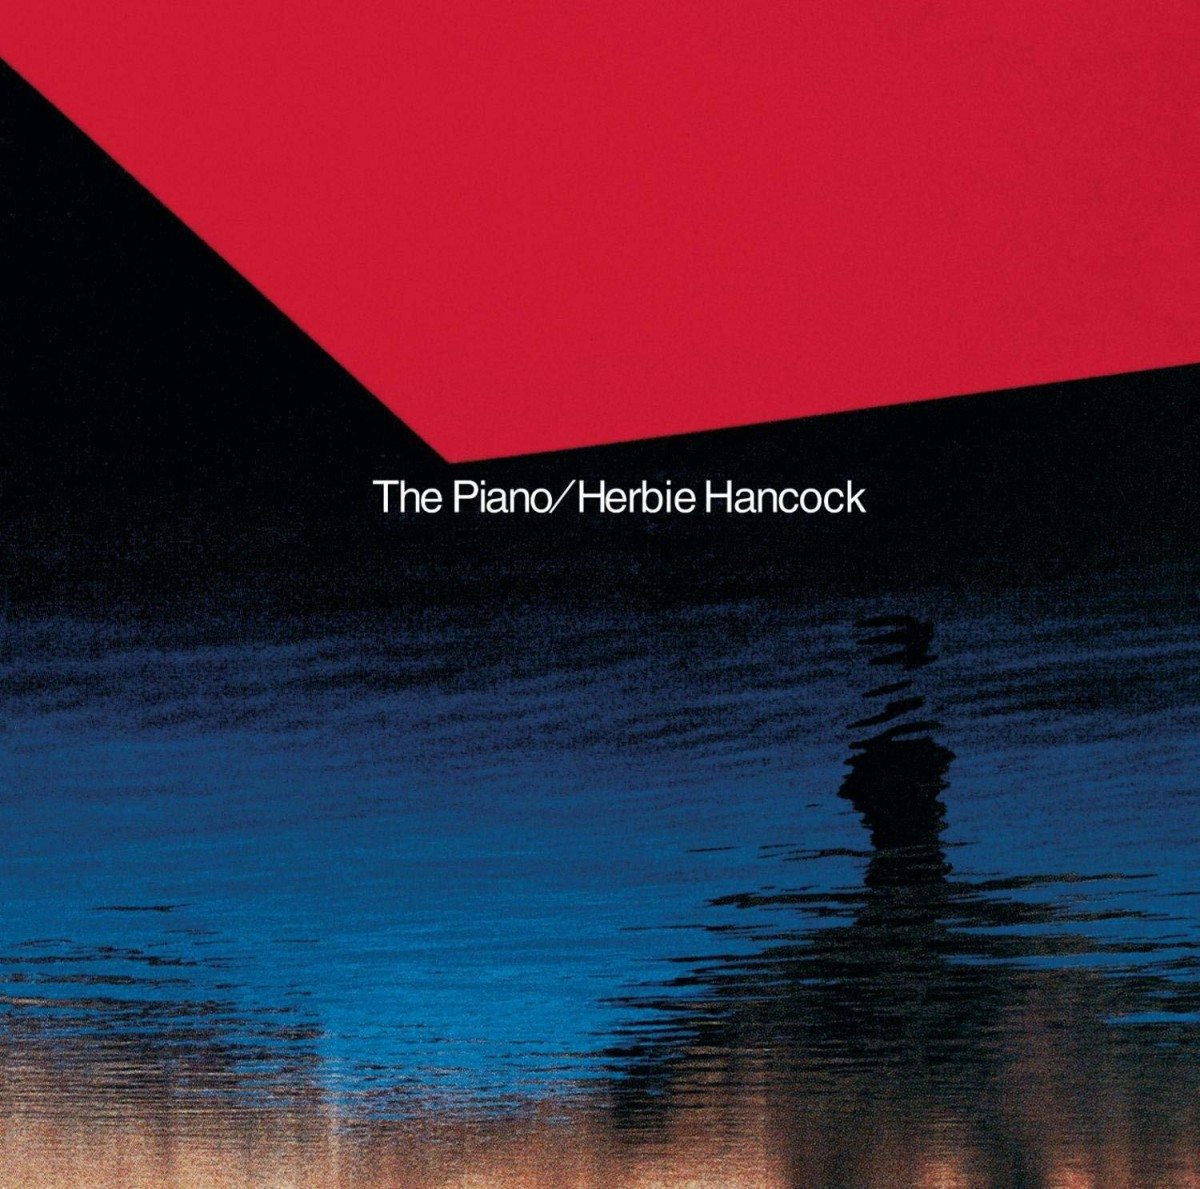 Herbie Hancock albums rated The Piano